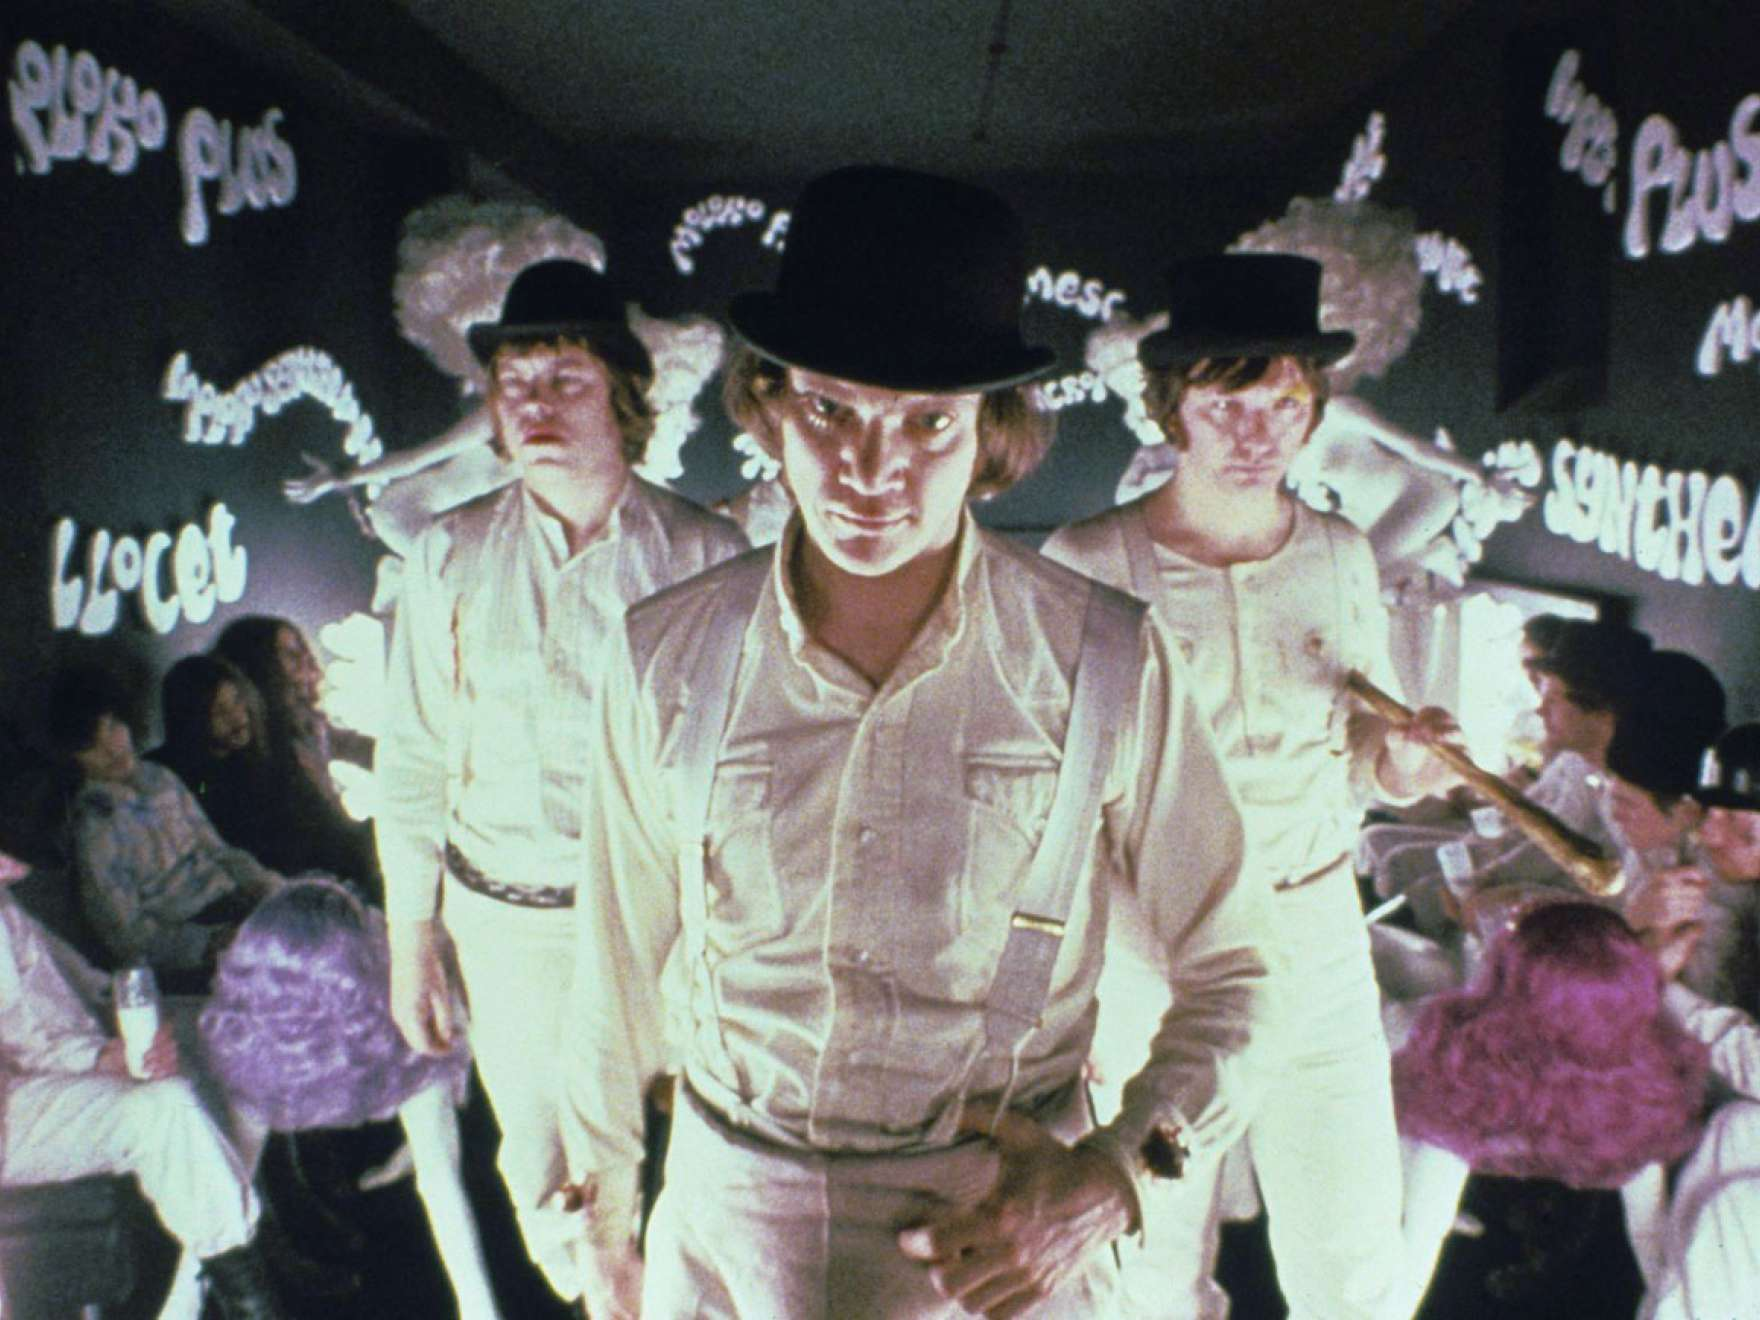 Film still from A Clockwork Orange